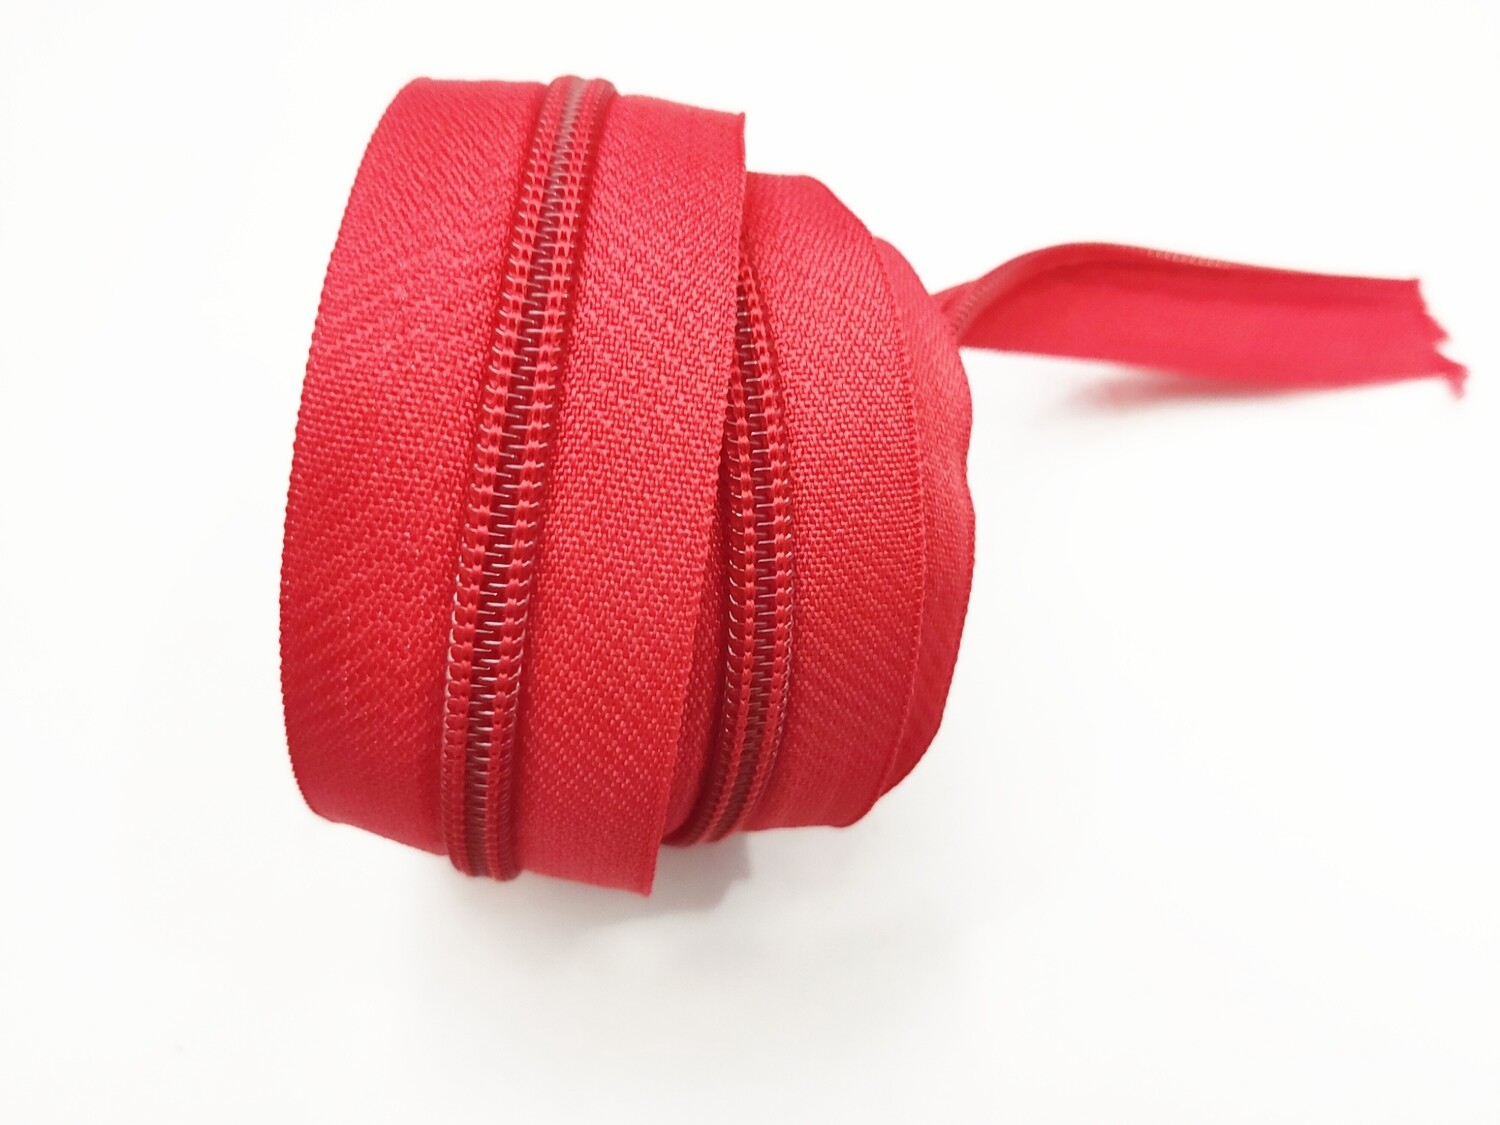 Red Nylon Zipper #5 yardage